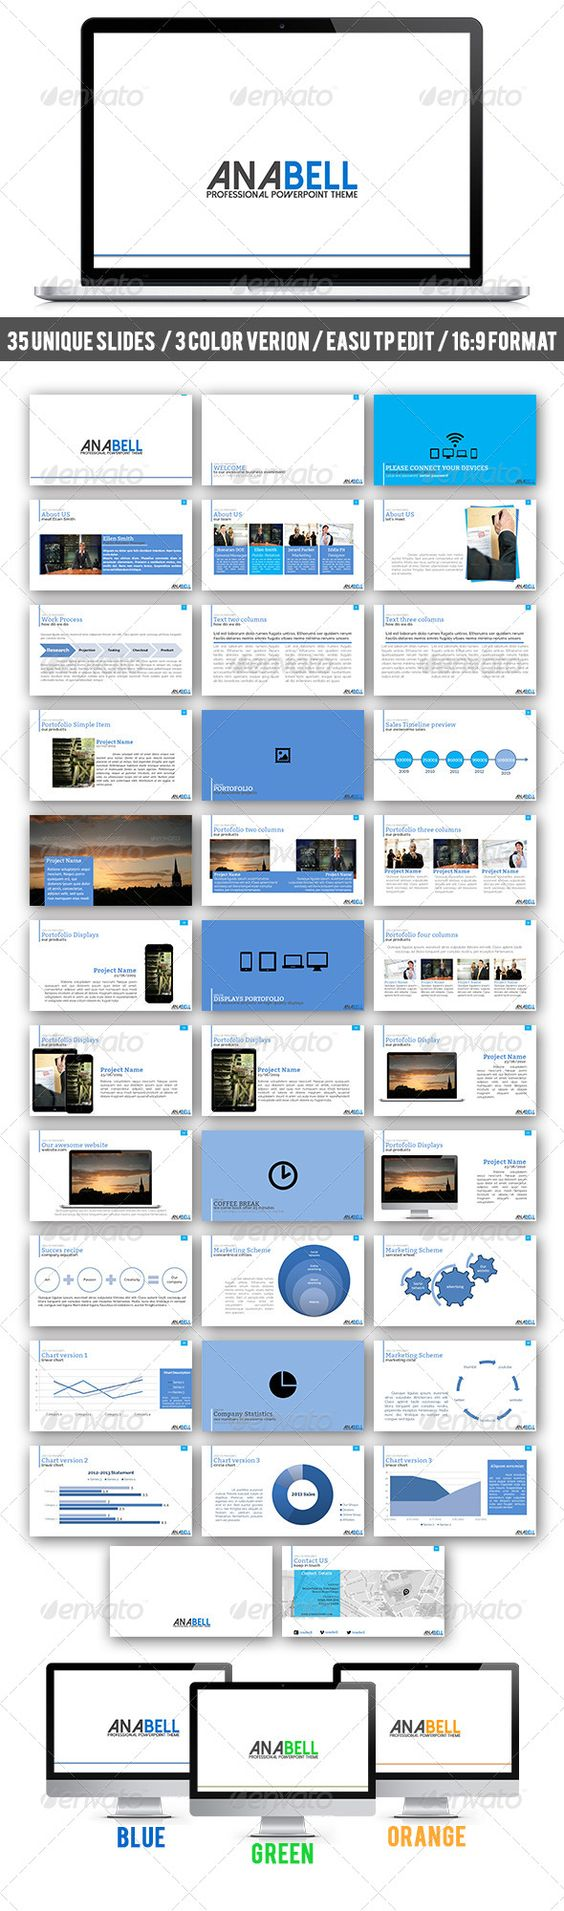 Anabell powerpoint theme powerpoint templates powerpoint anabell powerpoint theme powerpoint templates powerpoint powerpointtemplate presentation alramifo Image collections